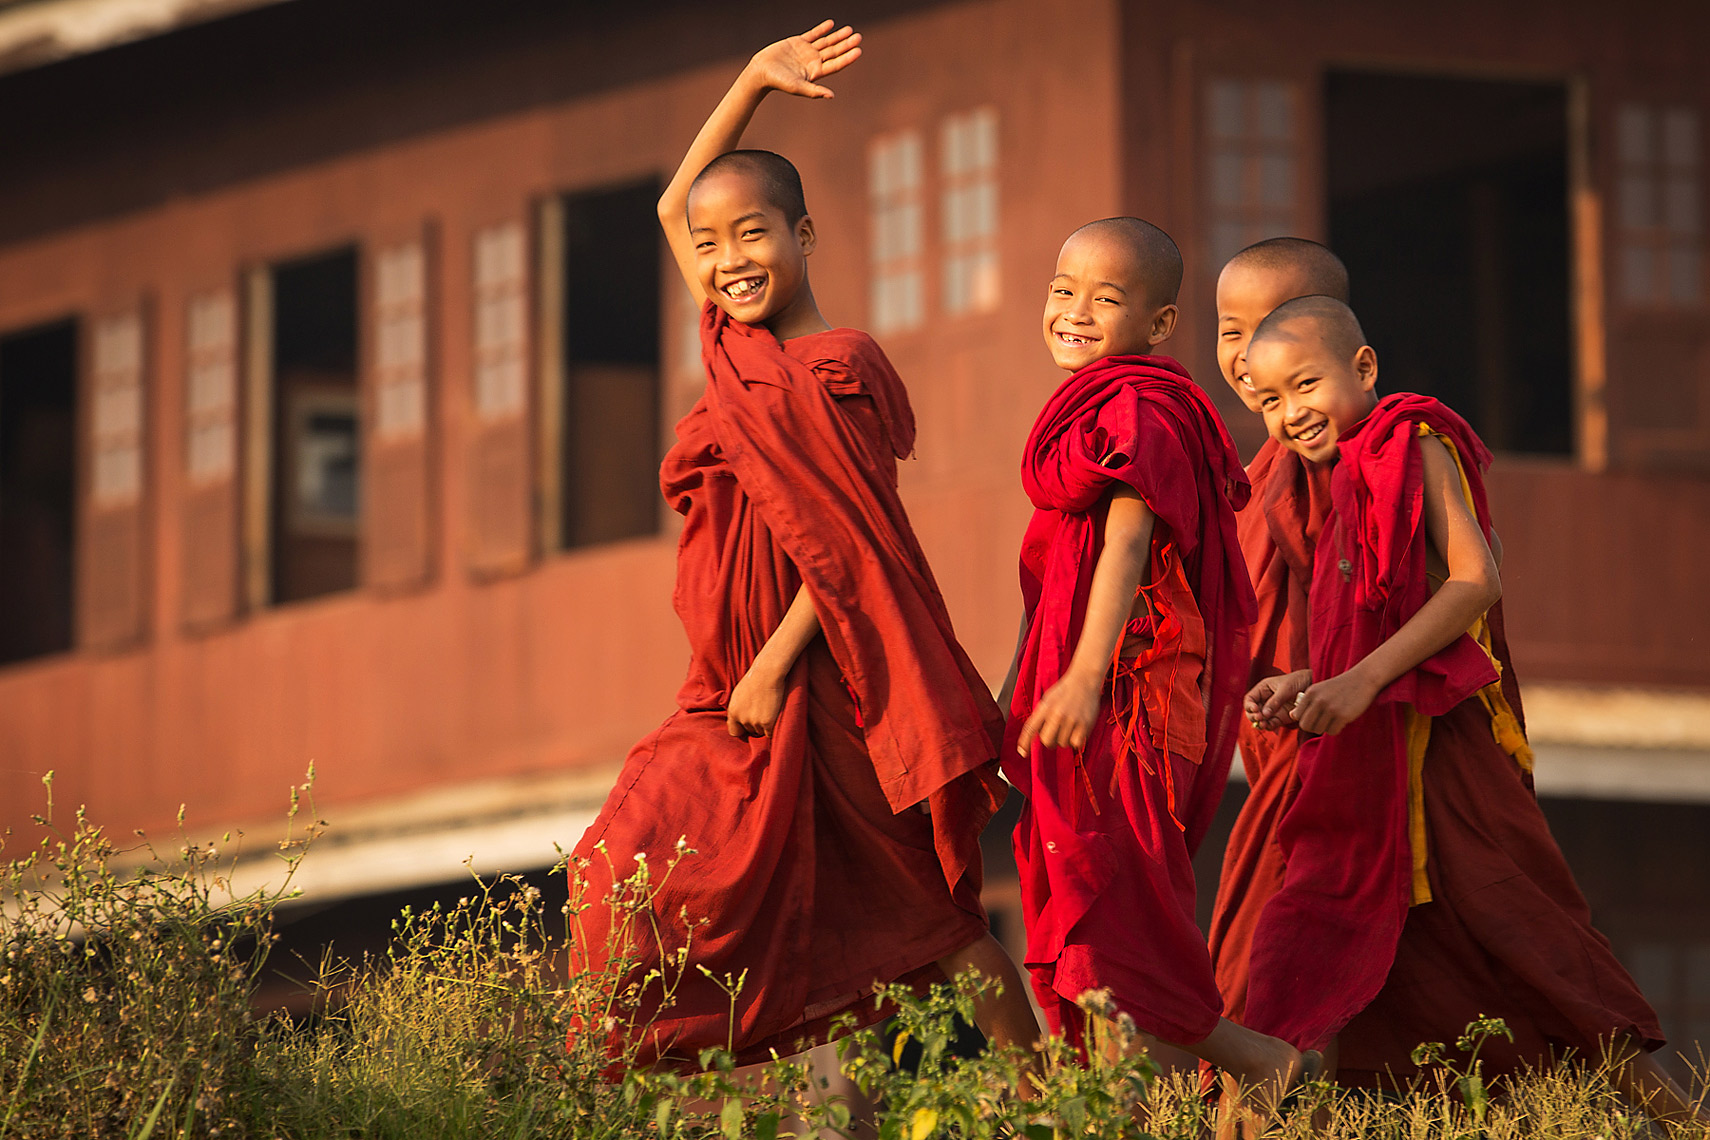 Monk-Novitiates-Burma by Dave White in Myanmar